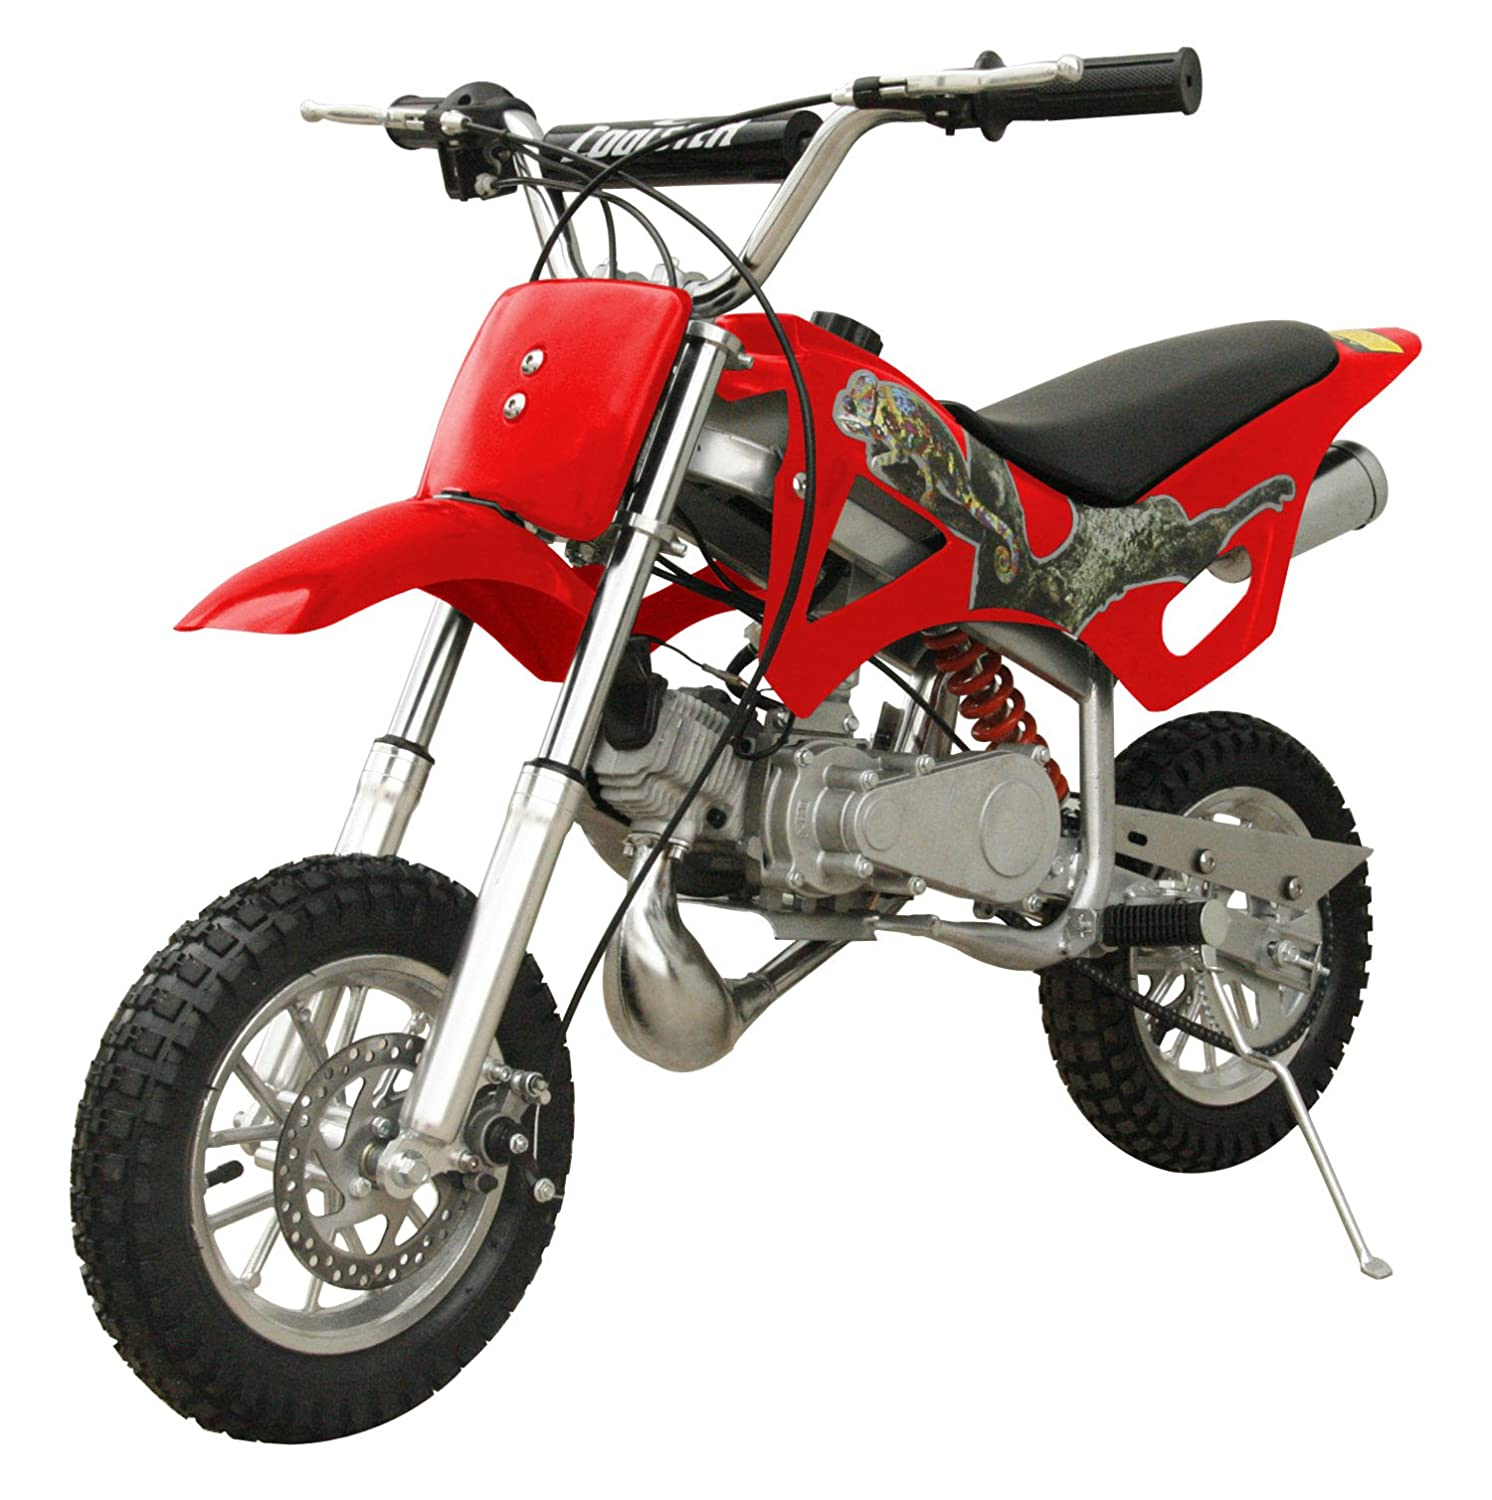 Amazon.com: Flying Horse 49cc 50cc 2 Stroke Gas Powered Mini Dirt Bike  Motorcycle – Gas Powered Kids Mini Dirt Motocross Bike: Automotive